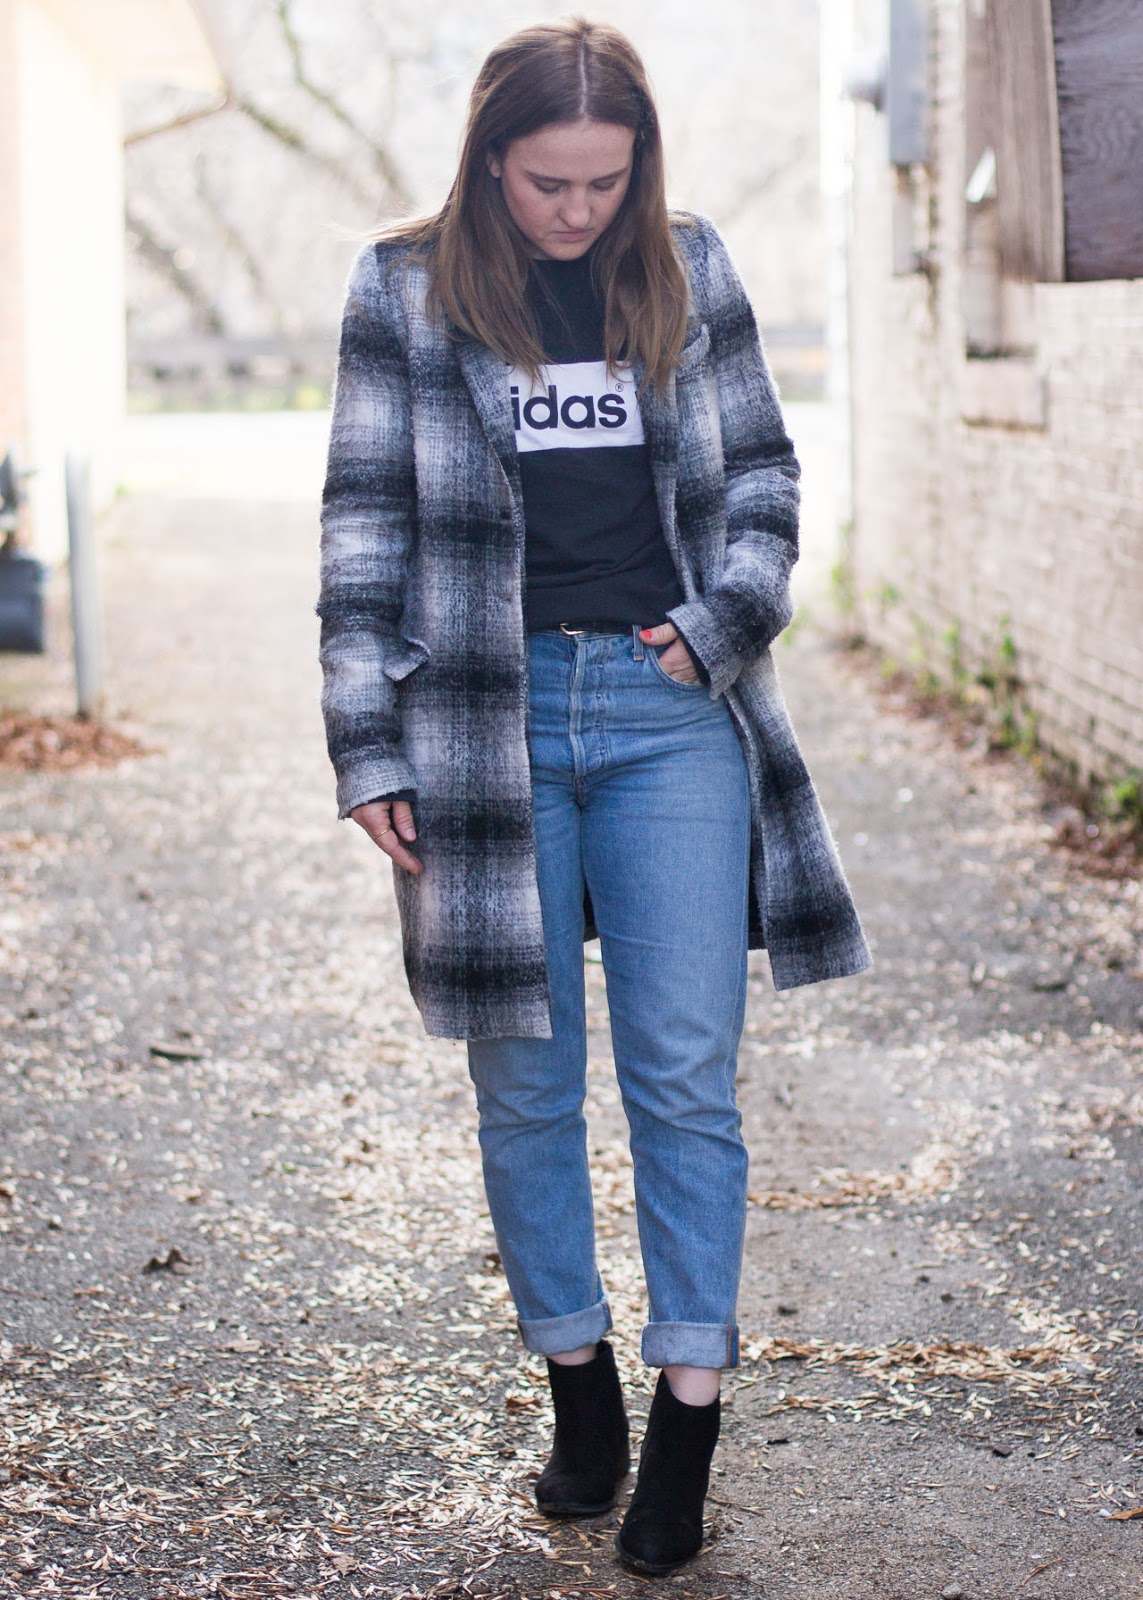 Coat Season - Winter style - Zara - Adidas sweat shirt - AGOLDE jeans - H&M boots